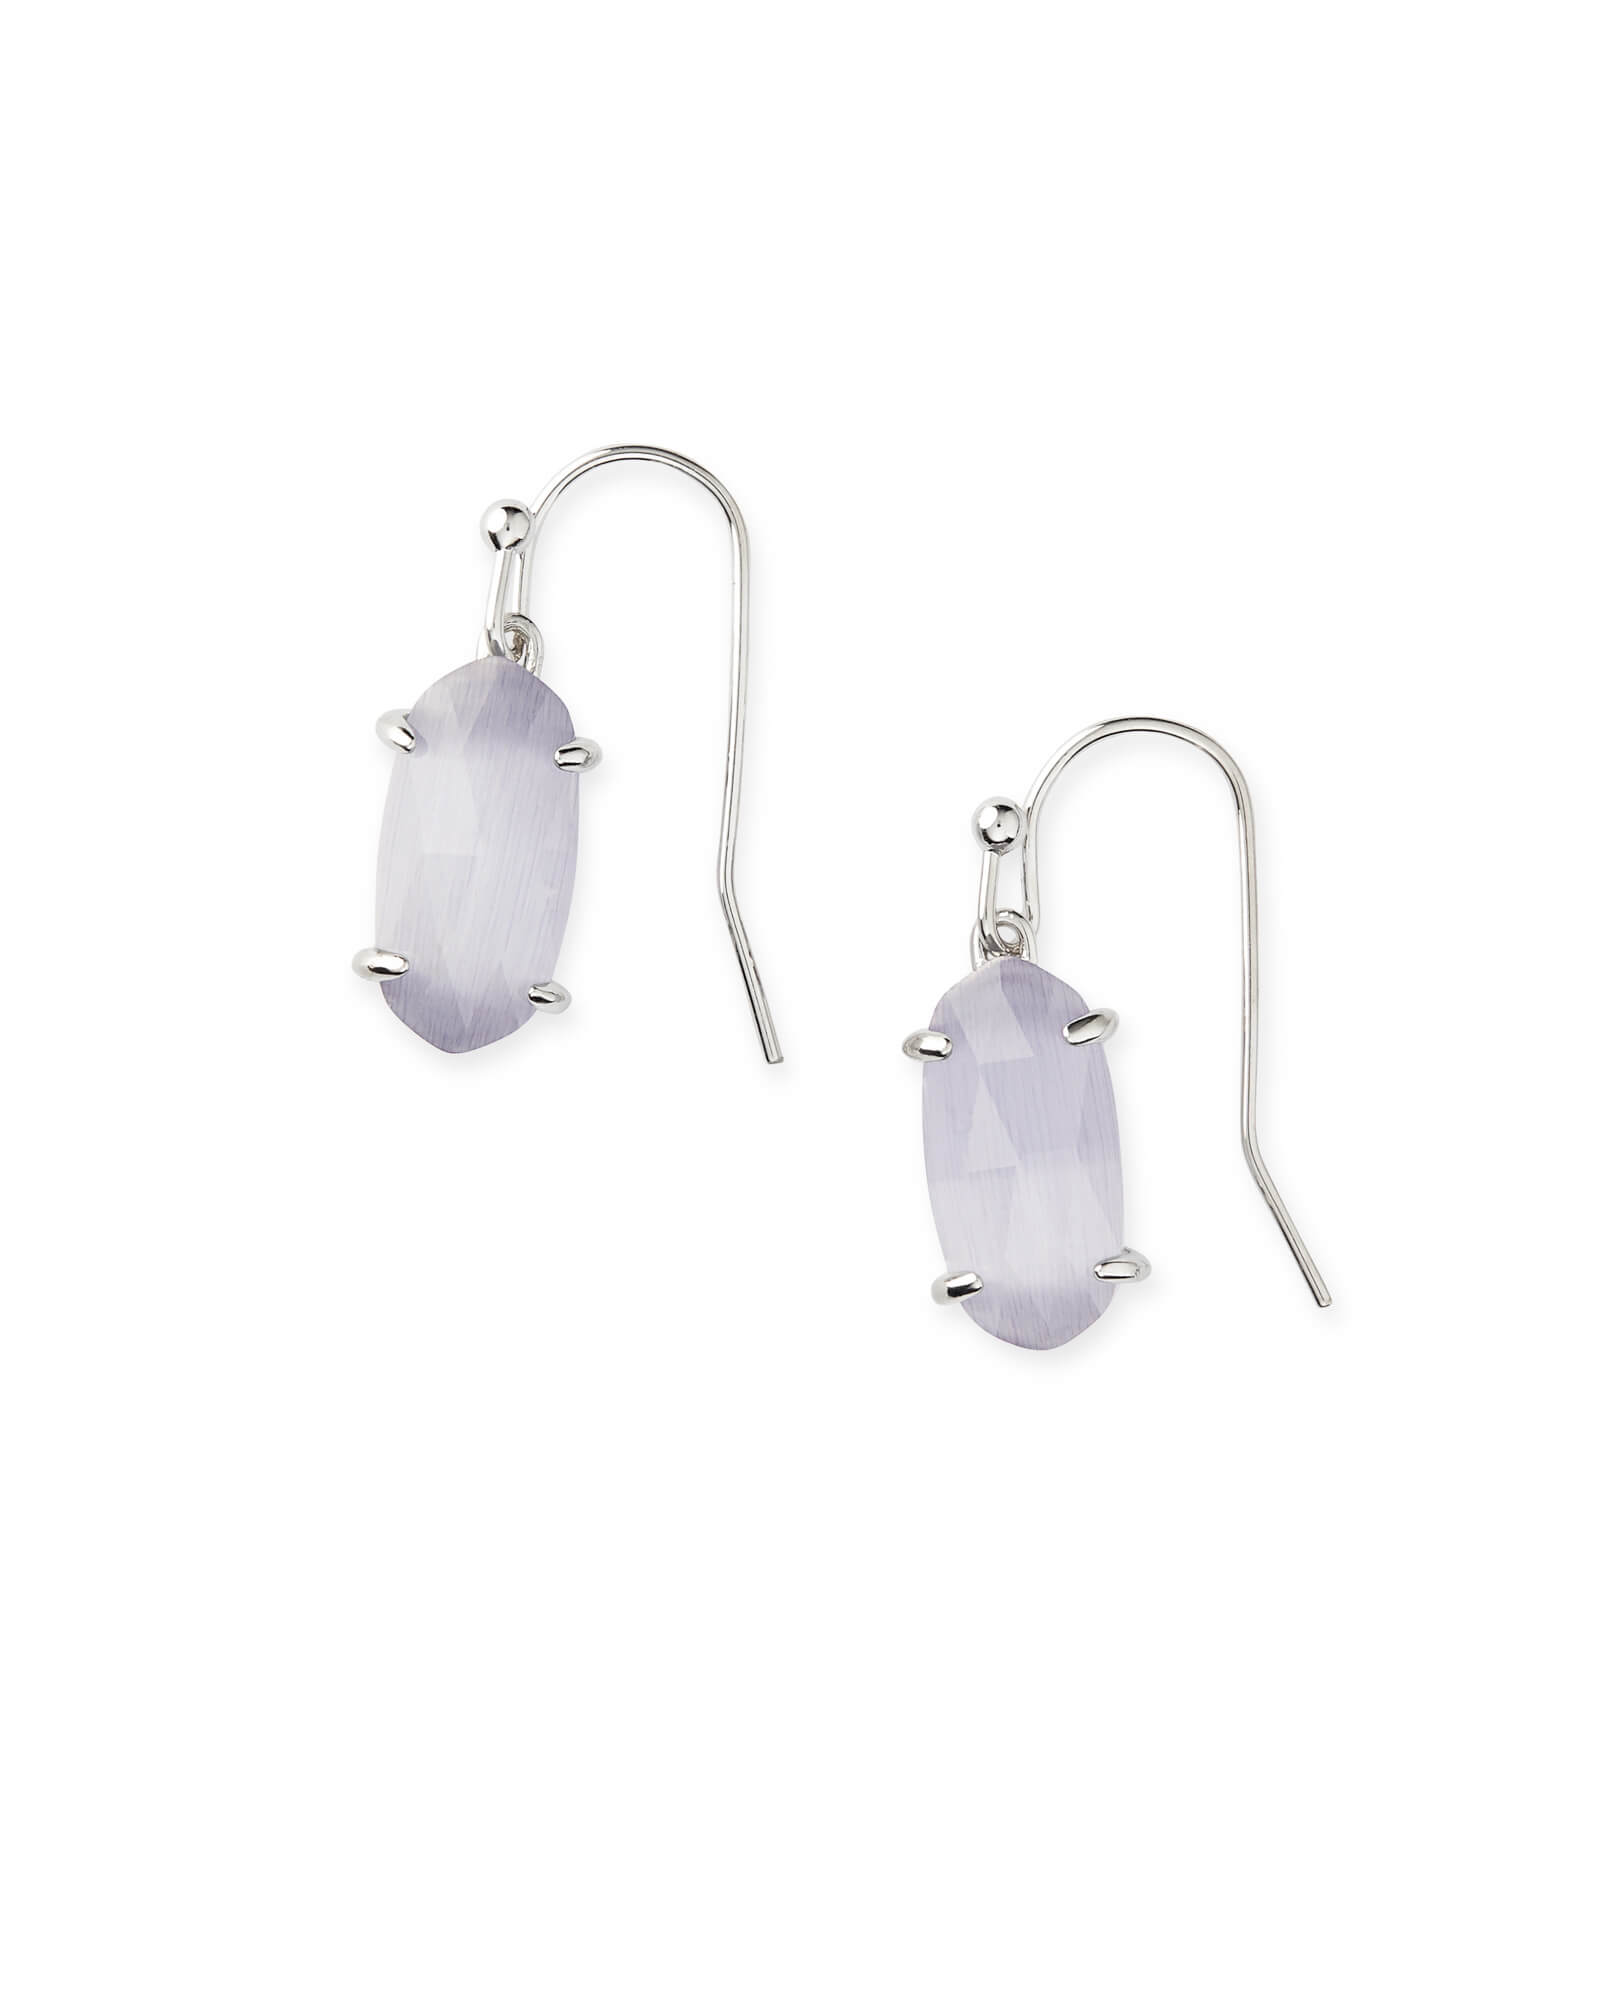 Lemmi Silver Drop Earrings in Slate Cat's Eye